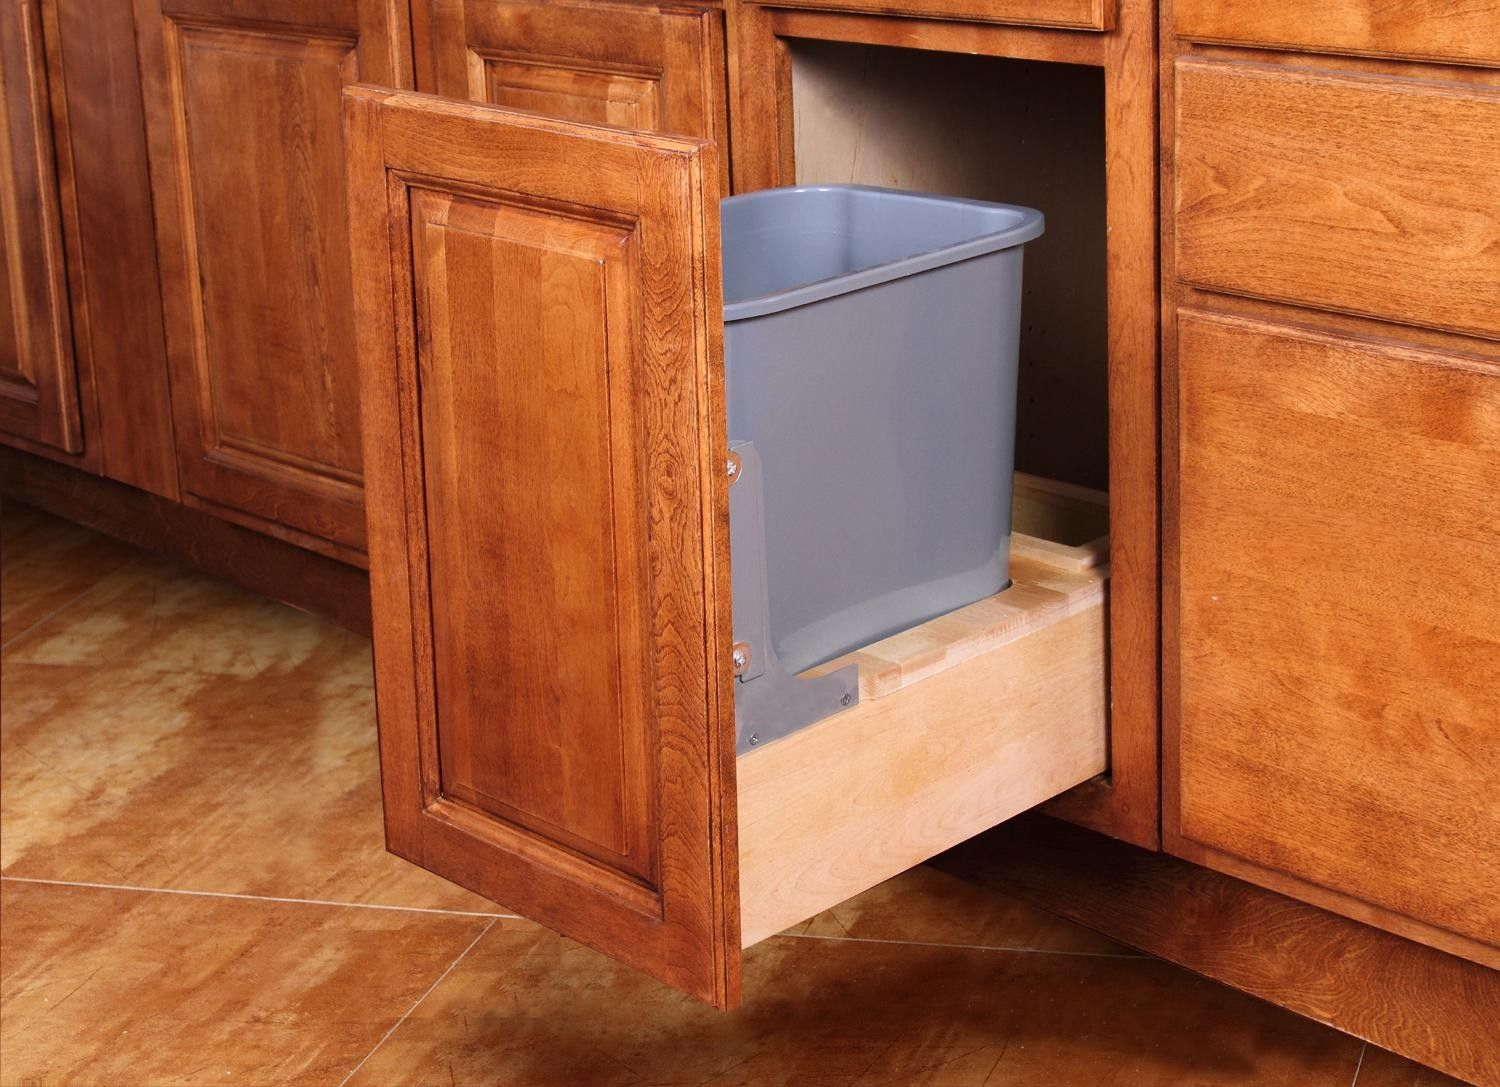 Single Pullout Waste Basket For A 15 Wide Base Cabinet